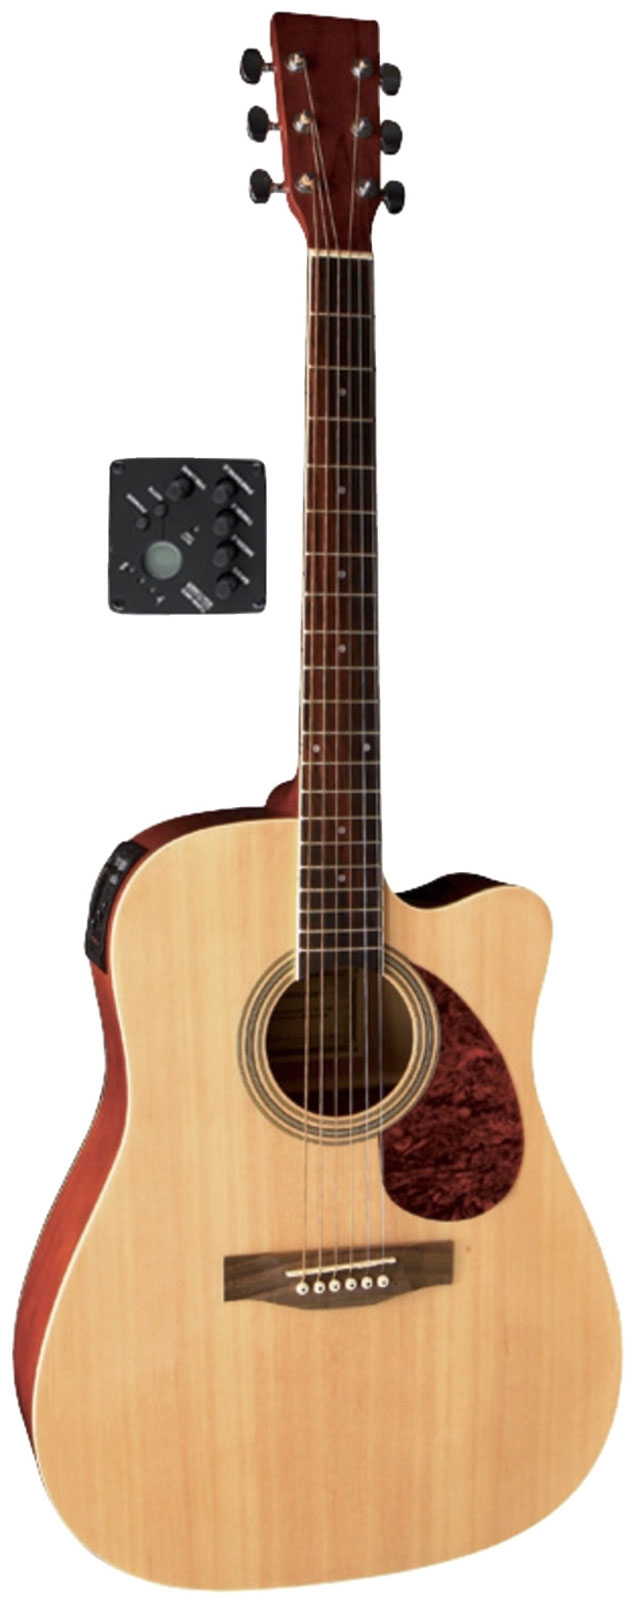 VGS D-10 CE NATURAL